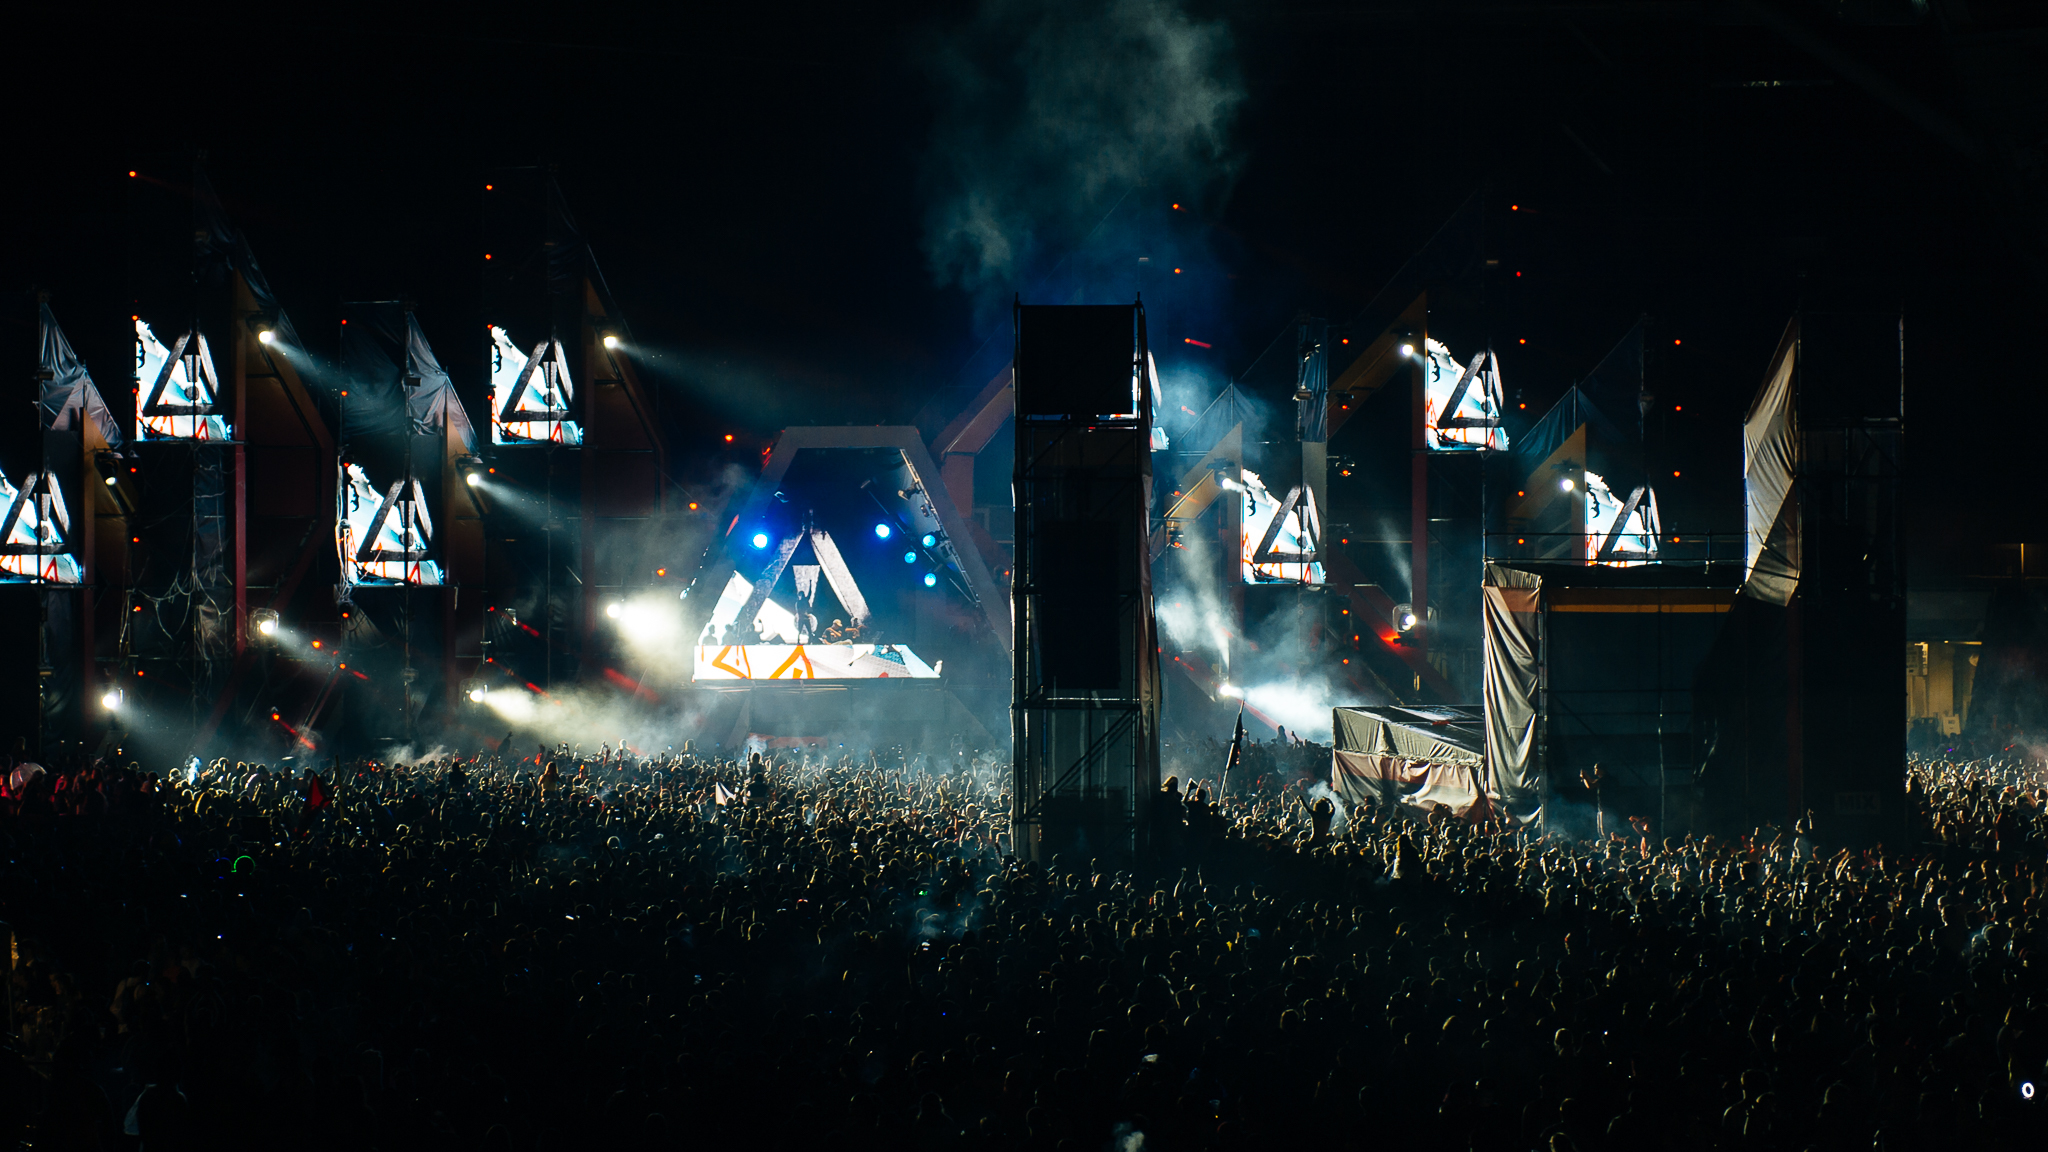 Ravers showed up catch EDM acts in Solider Field at Spring Awakening Music Festival 2015.